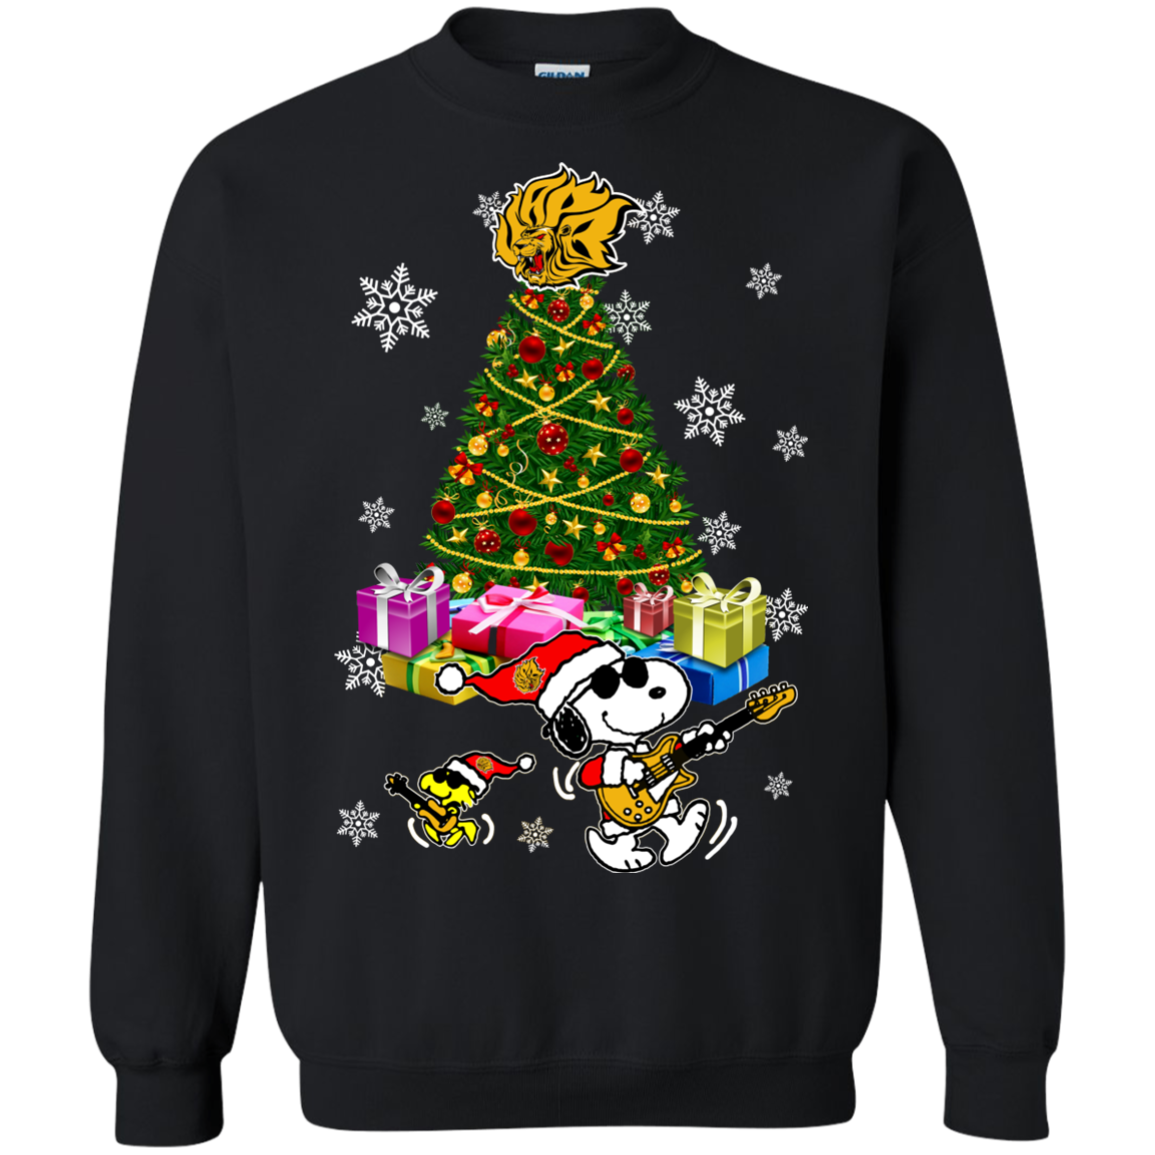 arkansas pine bluff golden lions ugly christmas sweaters merry christmas snoopy hoodies sweatshirts - Merry Christmas Snoopy